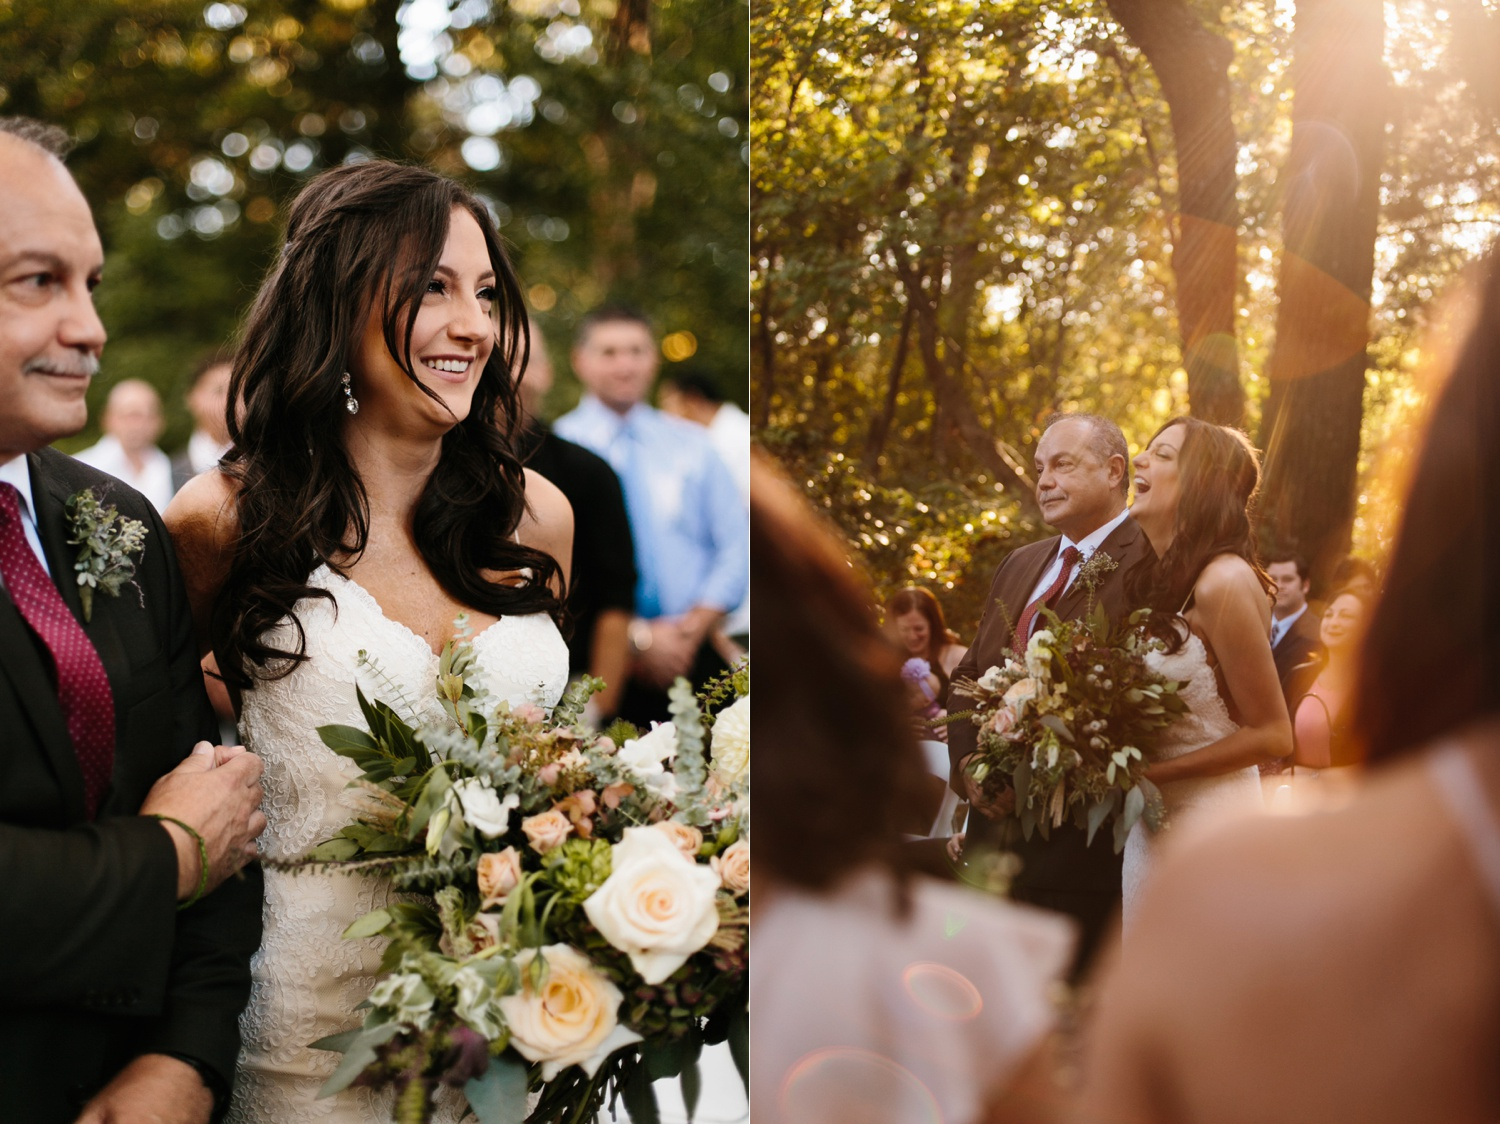 Erica + Henry | a bohemian inspired wedding at Chandlers Gardens in Salina, TX by North Texas Wedding Photographer Rachel Meagan Photography 070